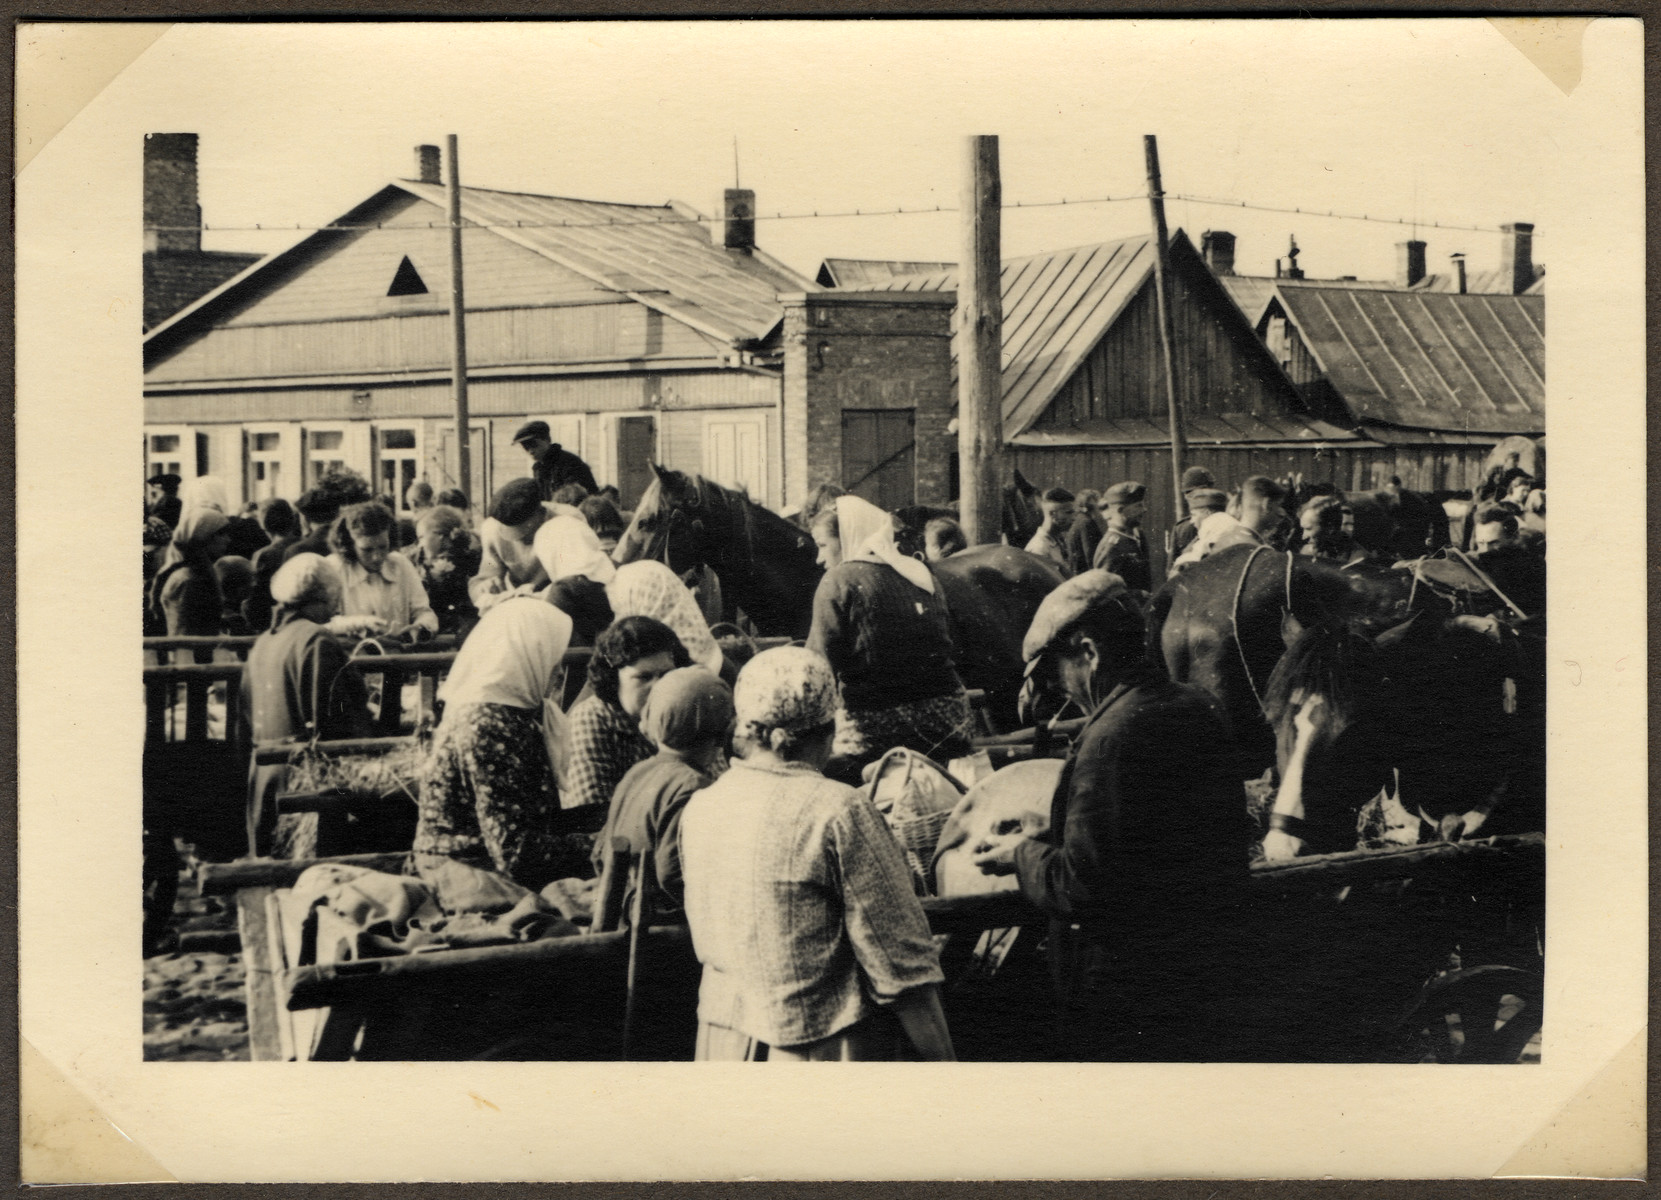 Lithuanians and Jews barter and sell goods [probably in a public square in Slobodka] during the move of Kovno's Jews to the ghetto.